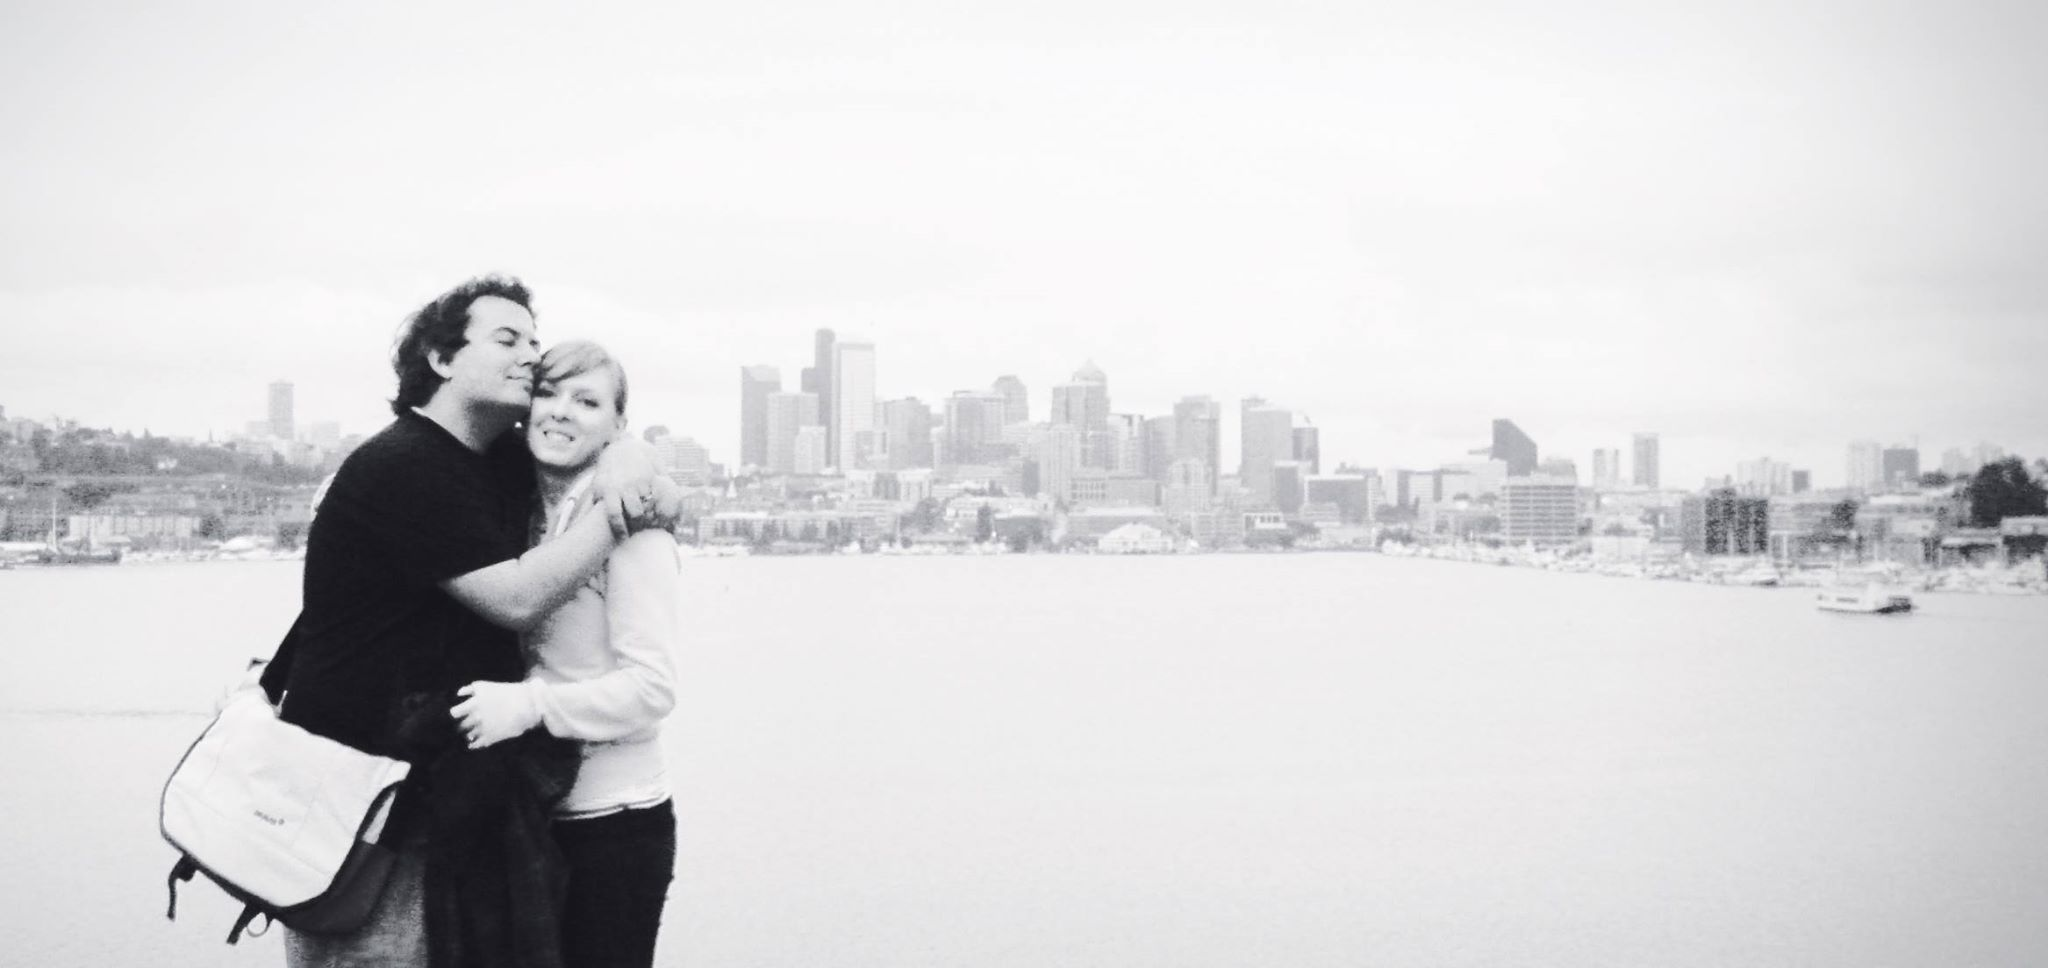 Neil and me overlooking the Seattle skyline from Gas Works Park